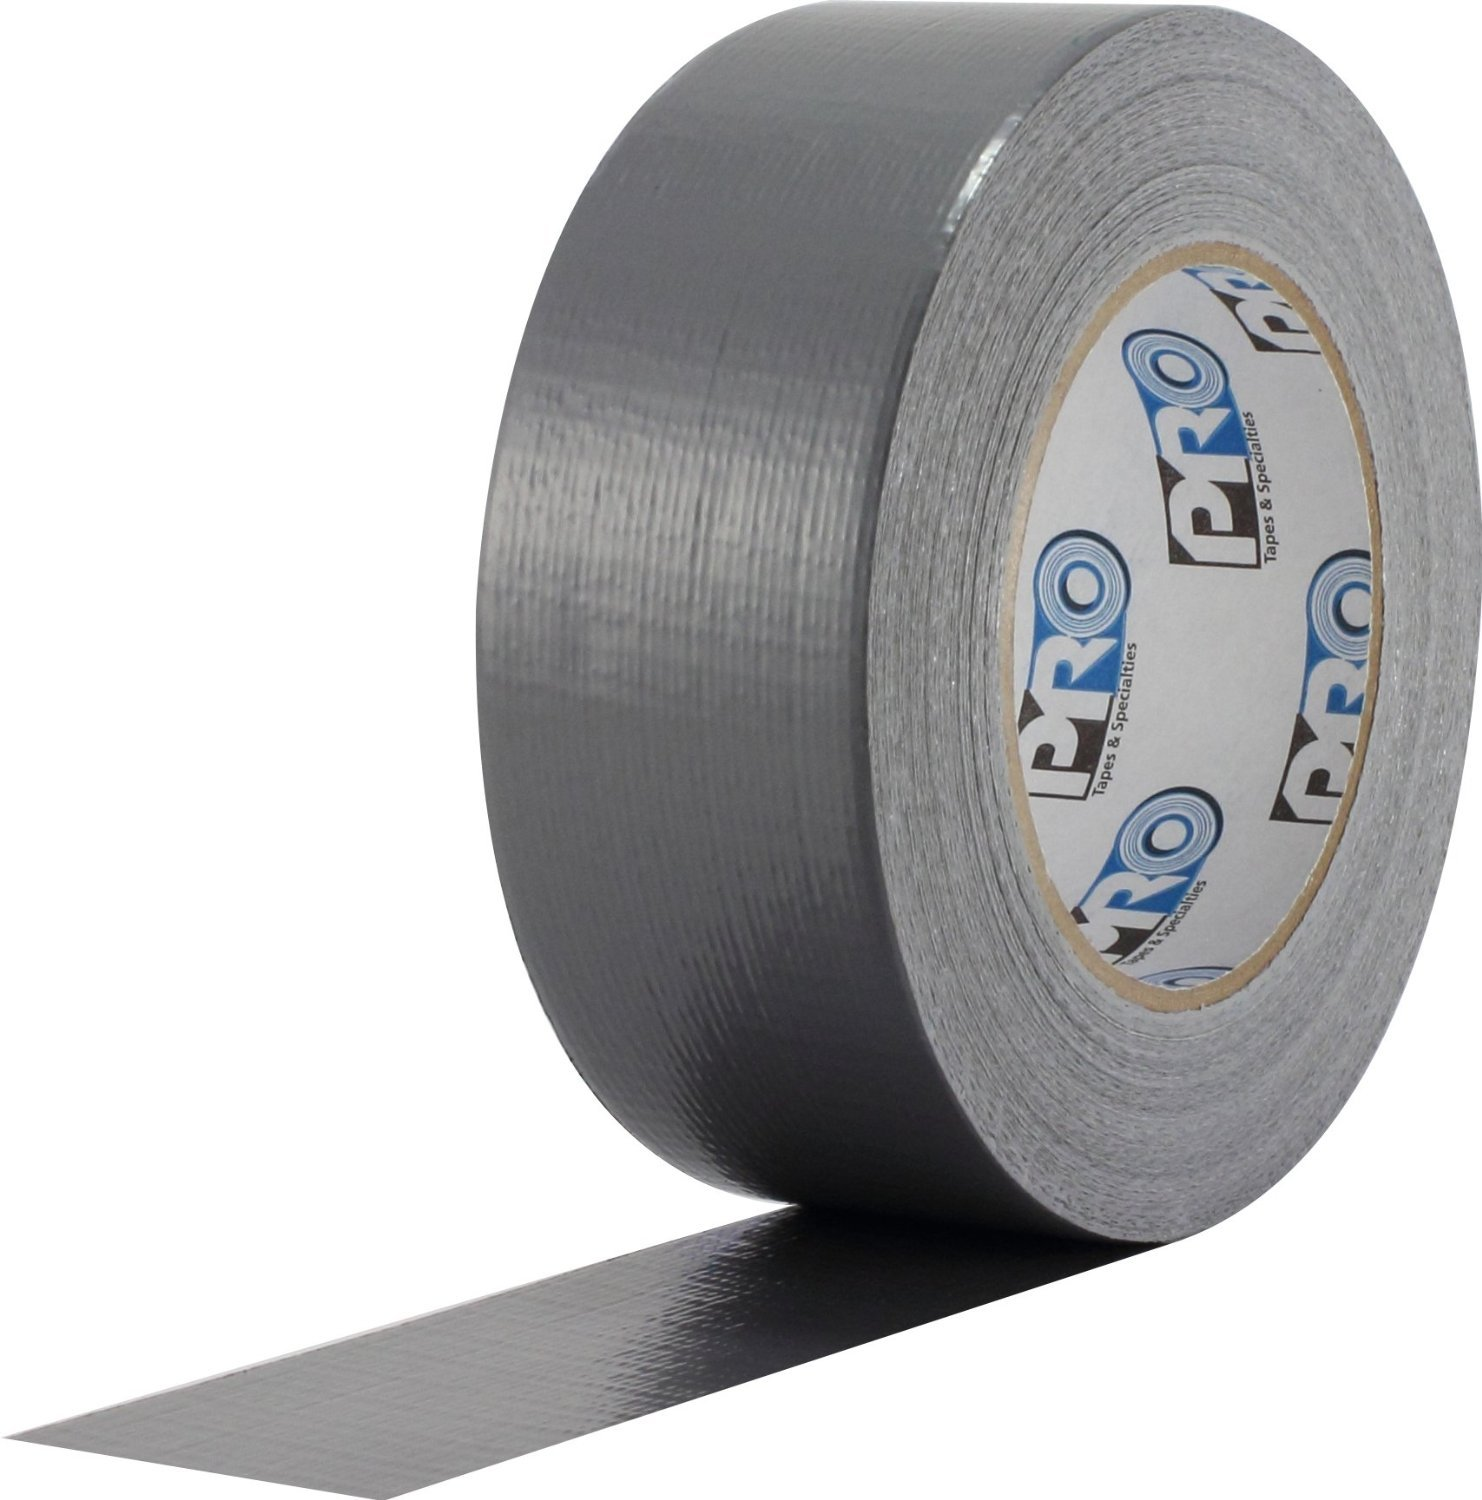 Amazon protapes pro duct 100 pe coated cloth economy duct amazon protapes pro duct 100 pe coated cloth economy duct tape 60 yds length x 2 width silver pack of 1 industrial scientific mozeypictures Gallery